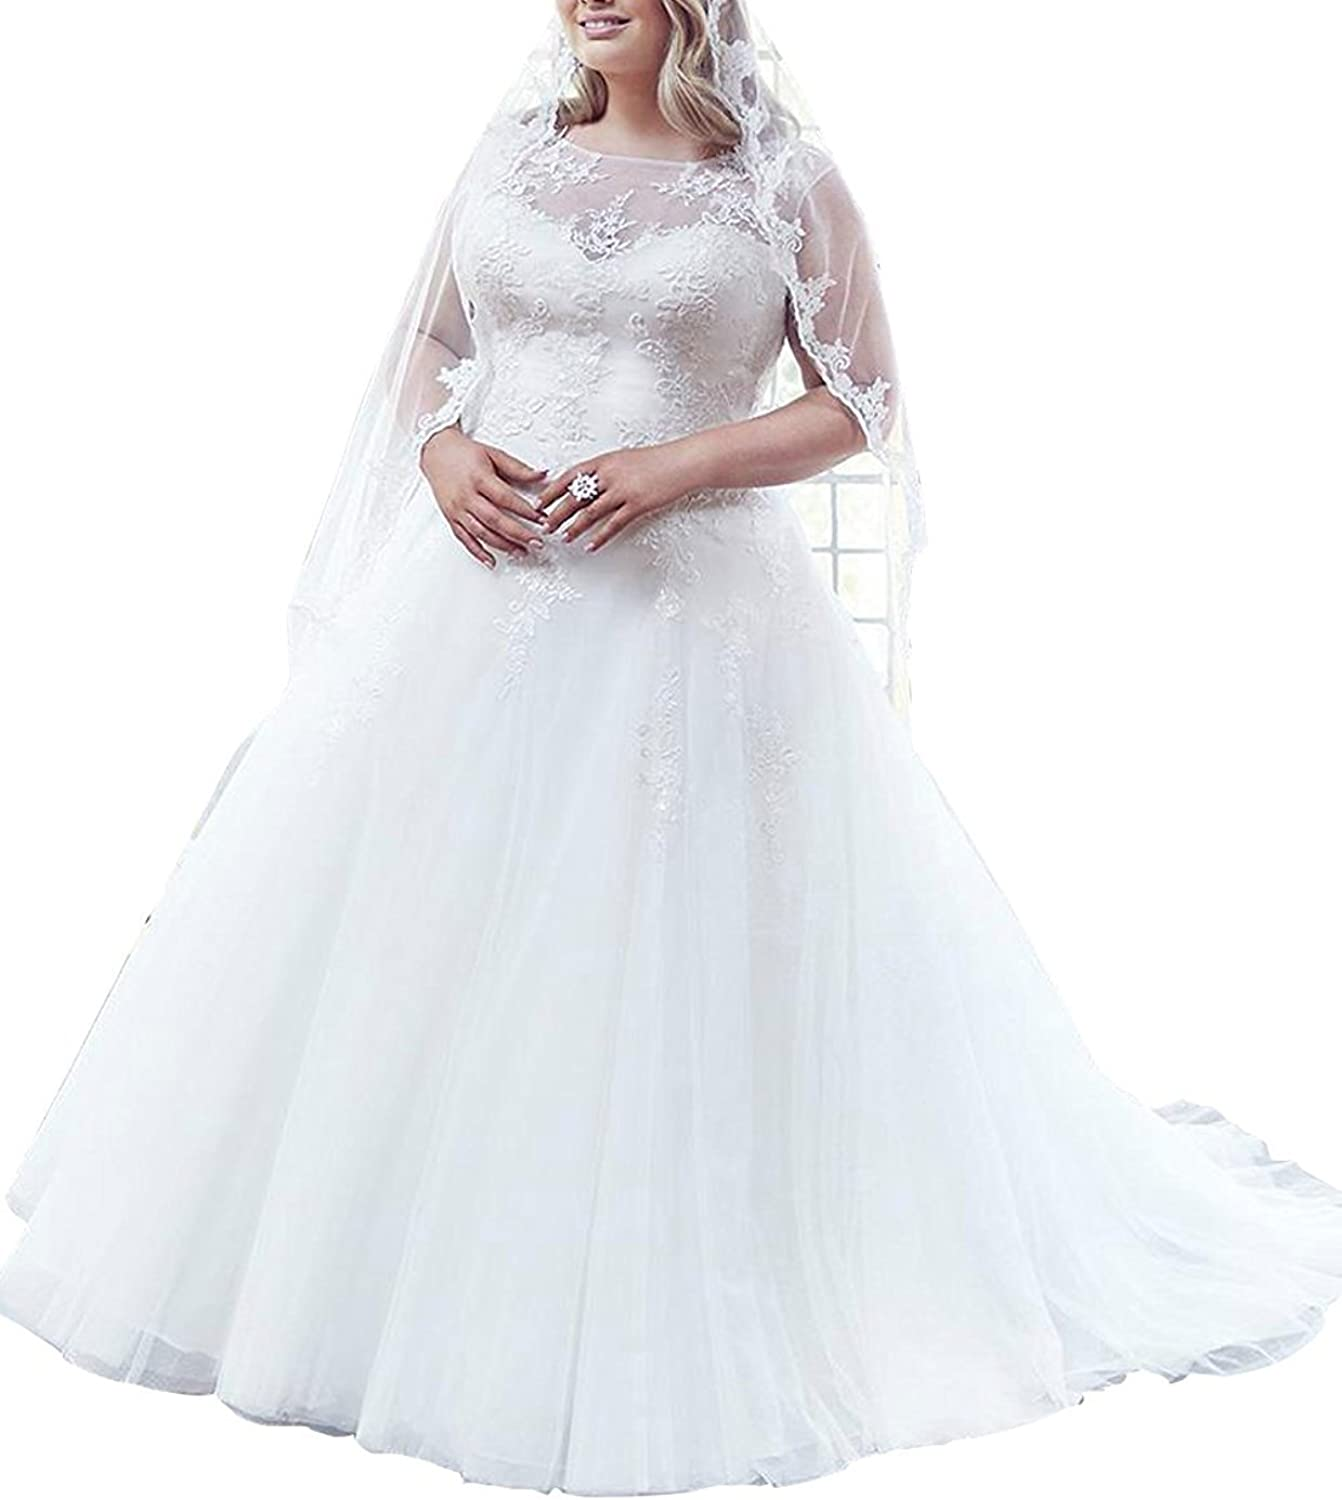 Vivibridal Women's Sheer Half Sleeve Plus Size Wedding Dresses Lace Bridal Gowns